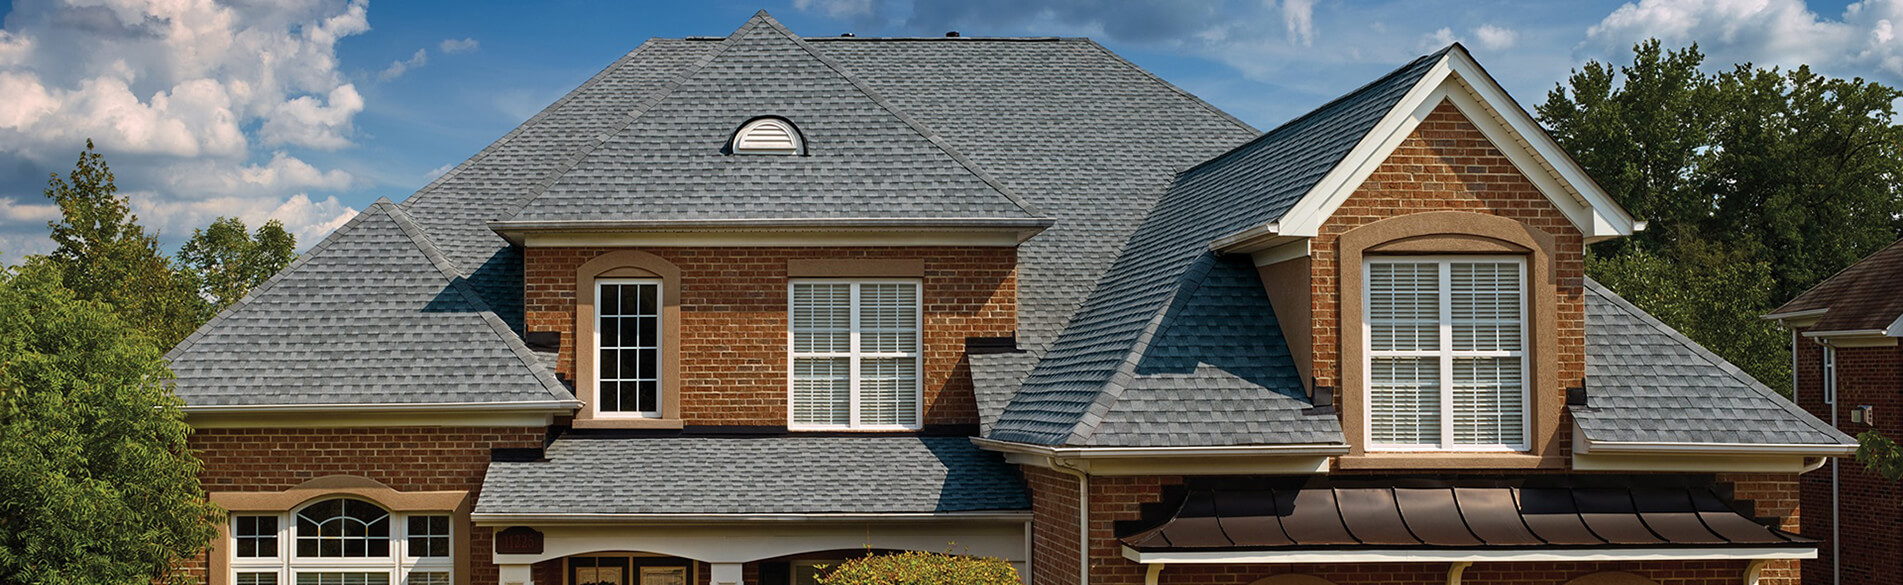 Best Residential Roofing Contractor in Lafayette